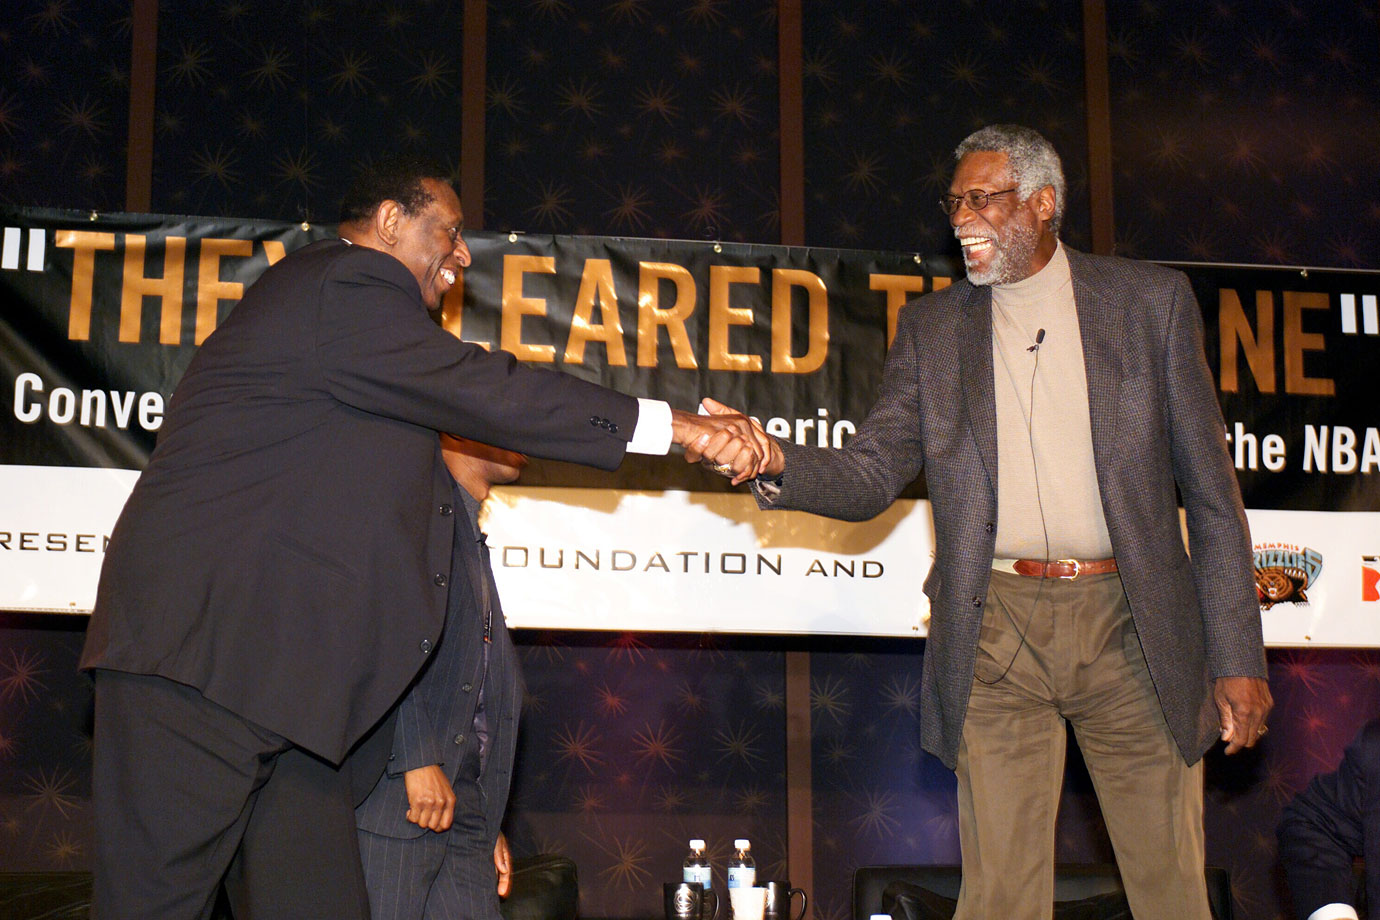 Earl Lloyd shakes hands with Bill Russell, the first African American head coach, during a Symposium at the Cook Convention Center in Memphis in 2003.